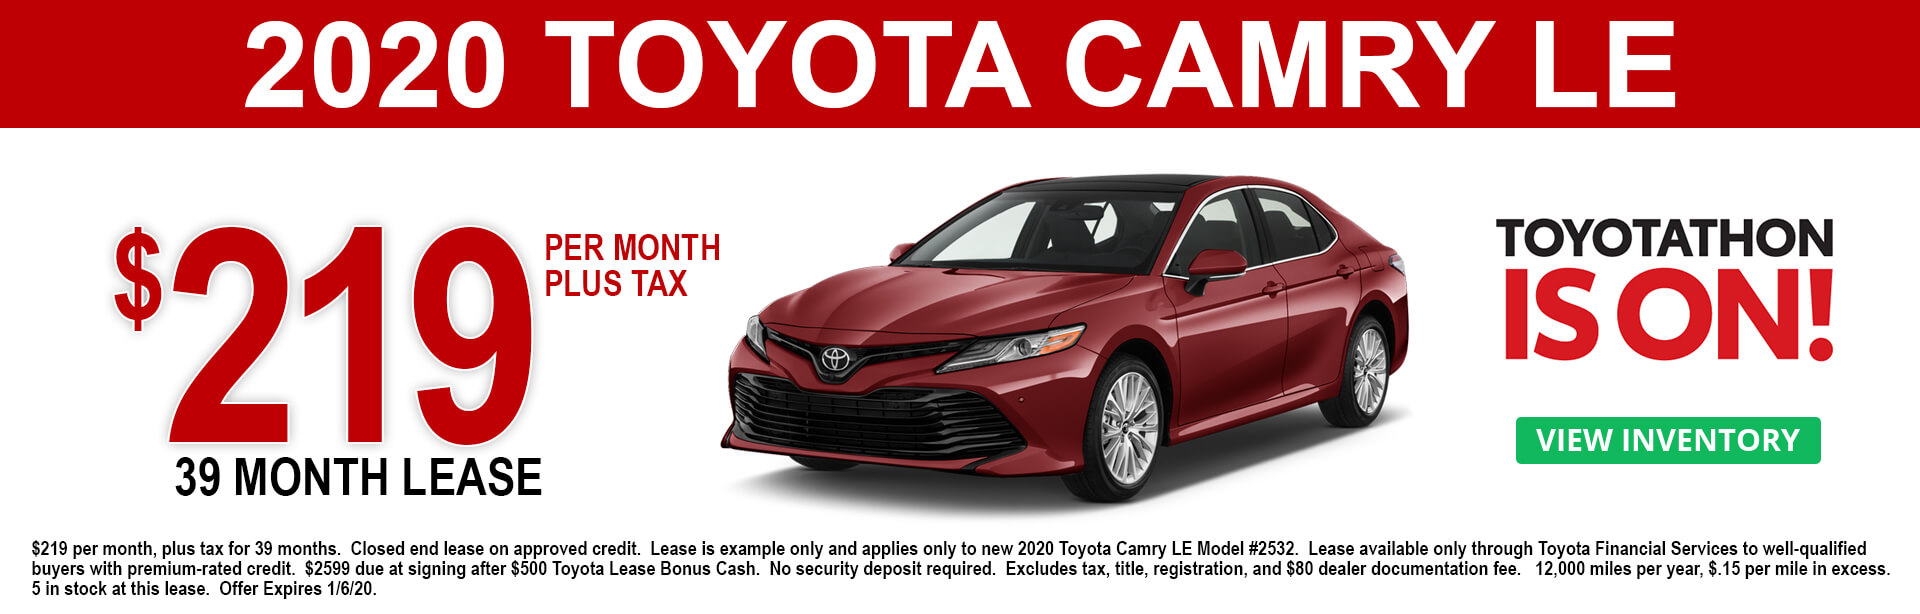 2020 Toyota Camry LE Lease Offer $219 per month 36 months